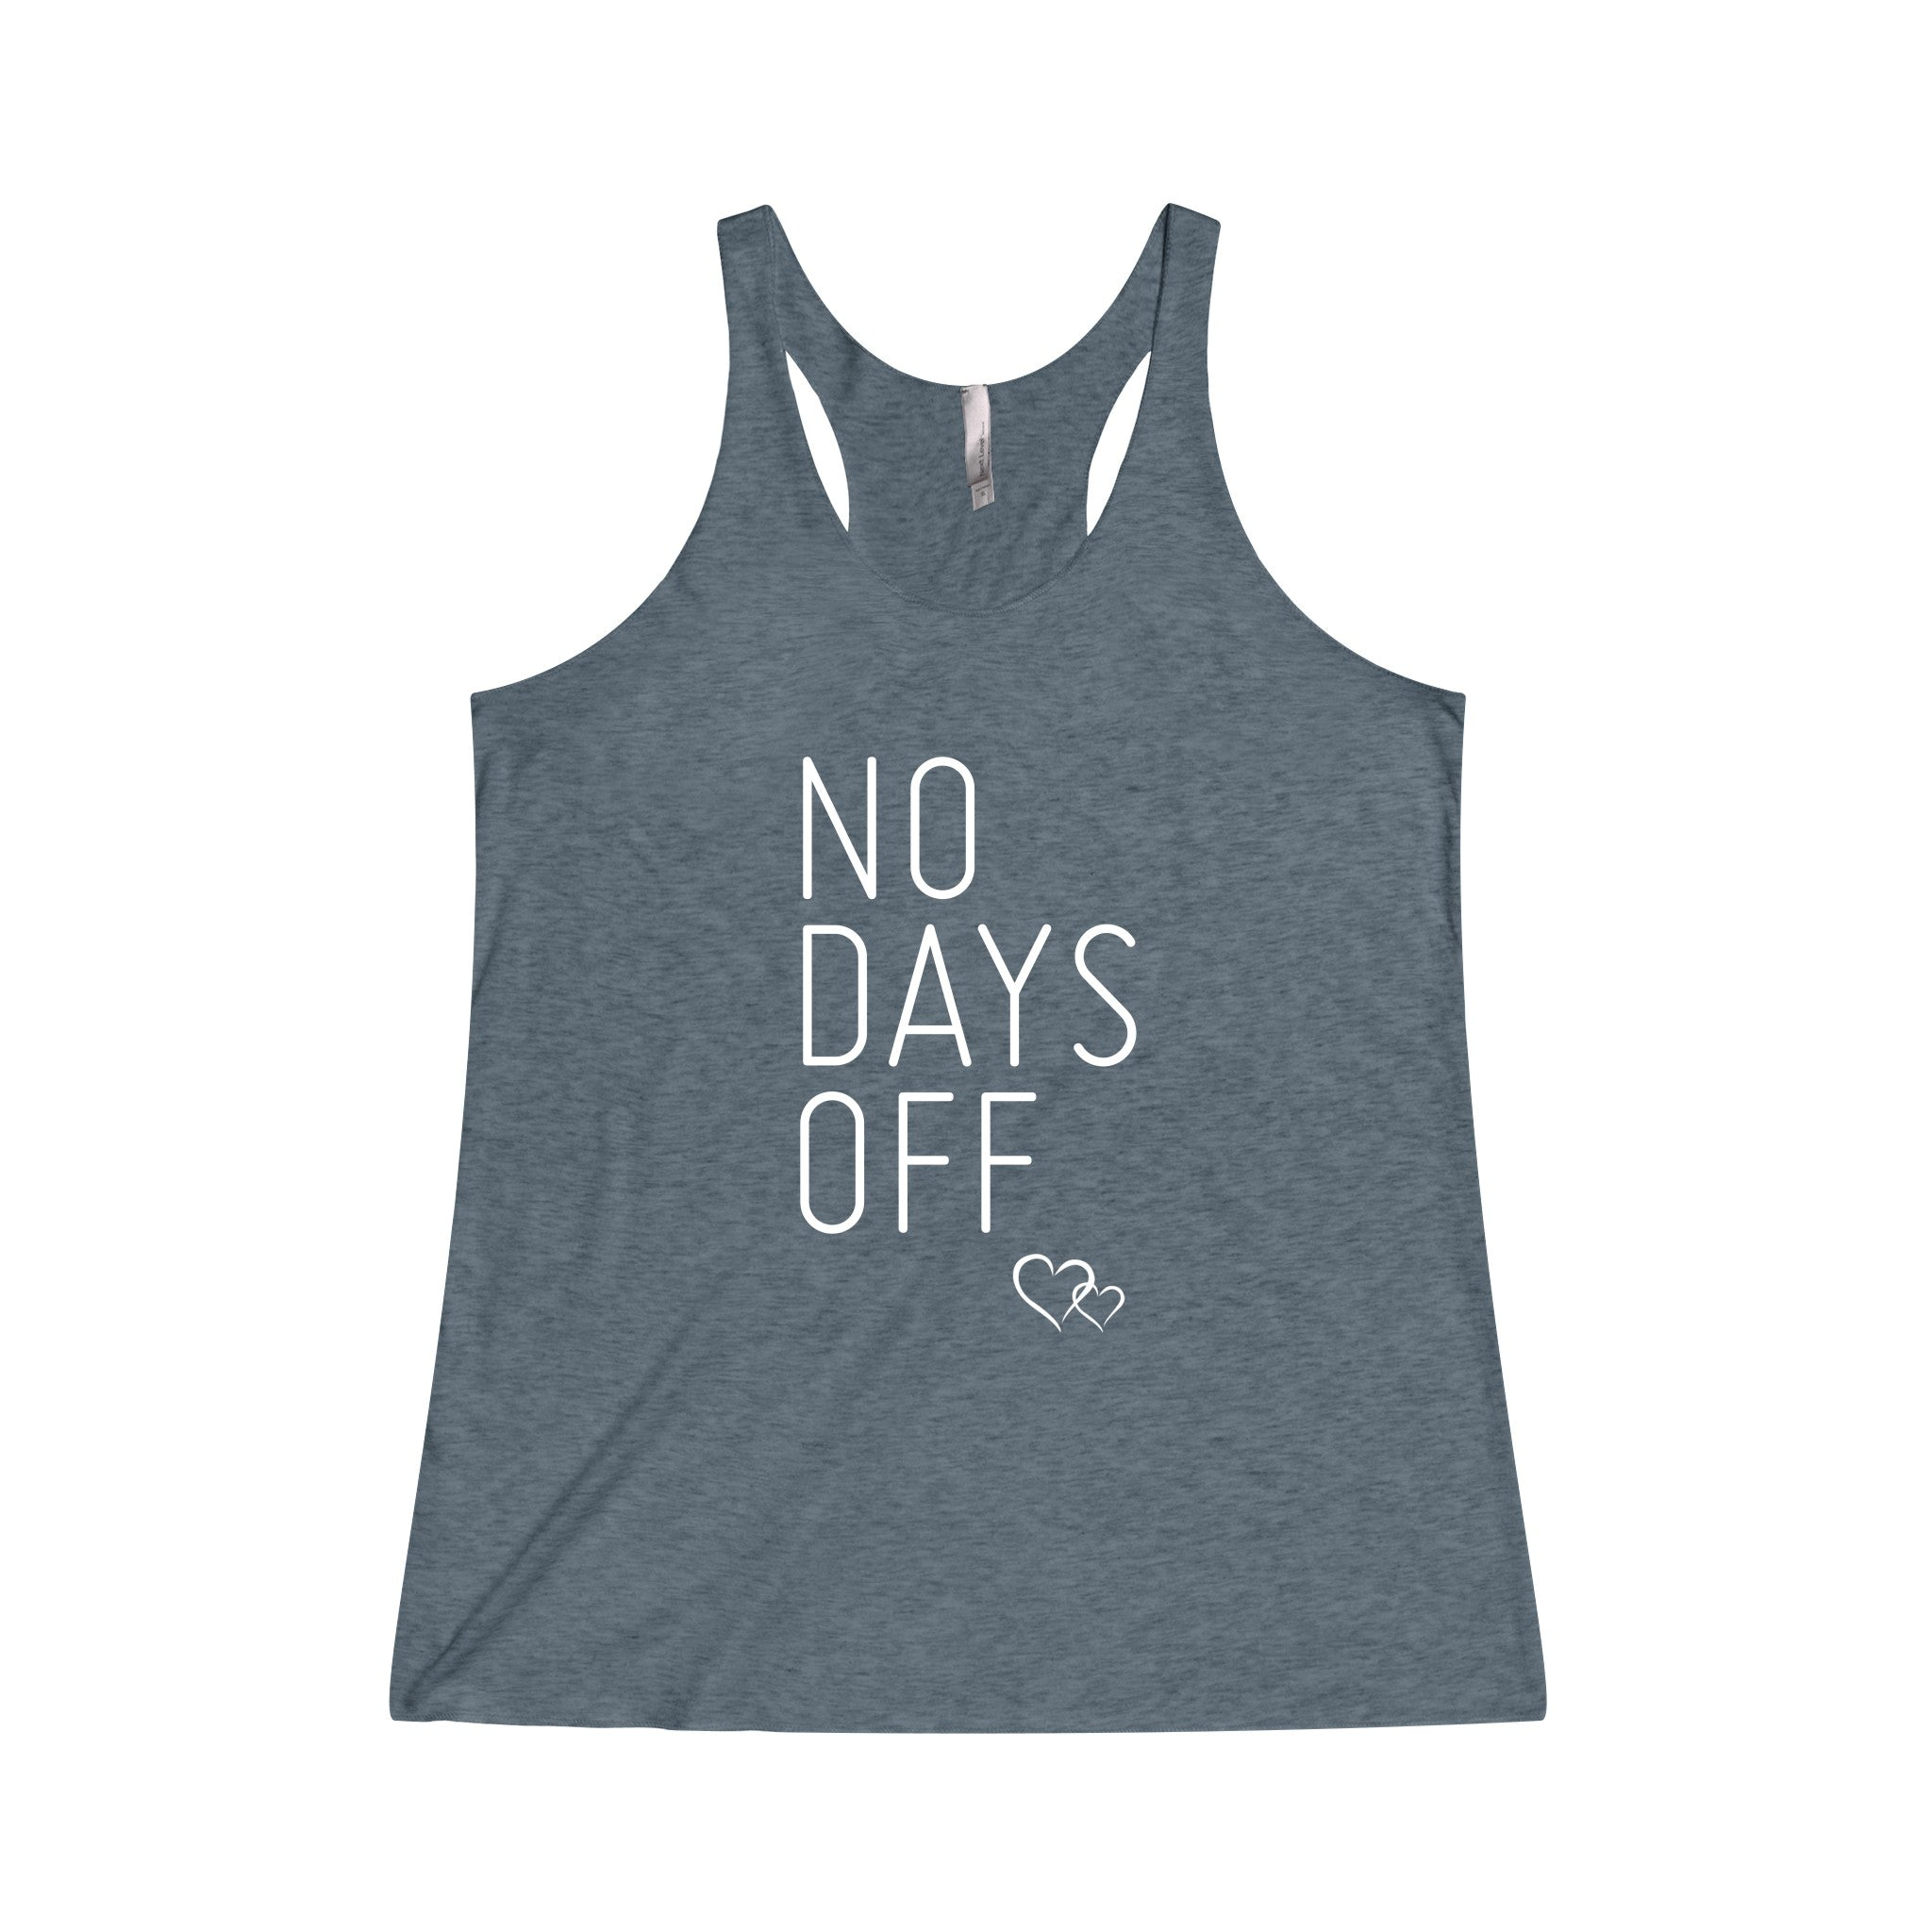 NO DAYS OFF - Tri-Blend Racerback Tank